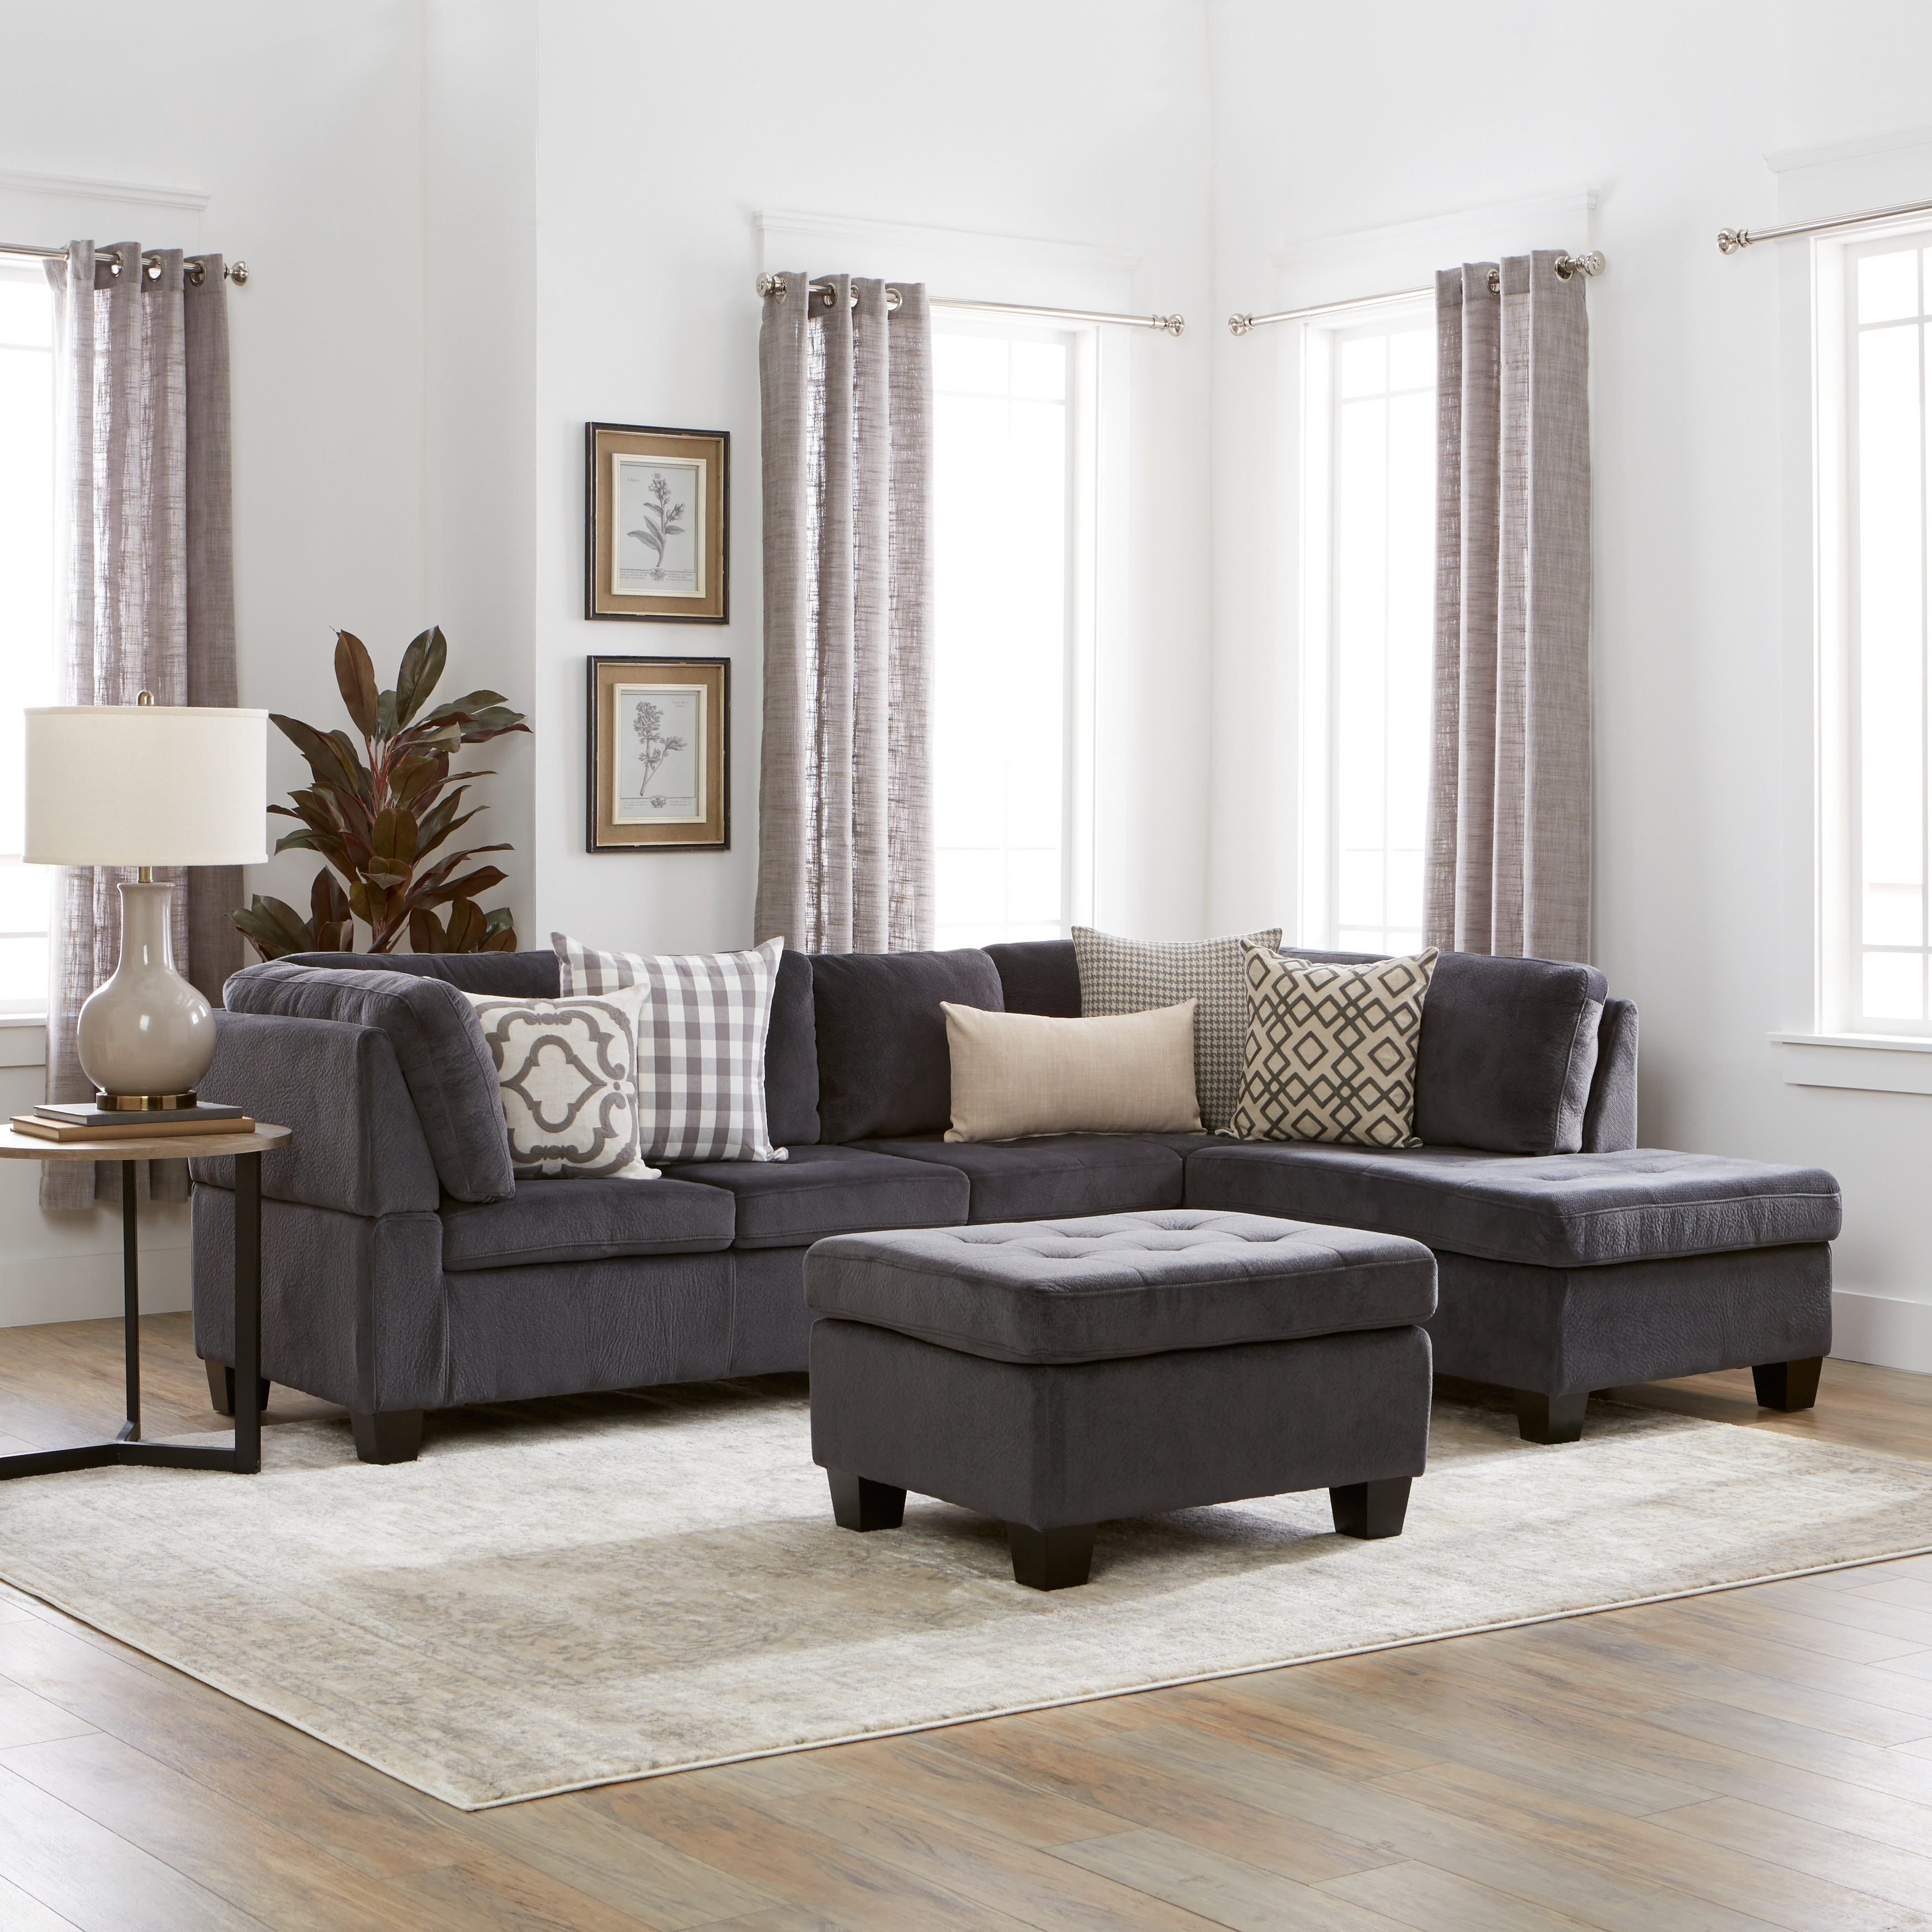 4377 Everest 2 Piece Sectional Sofa with LSF Chaise by Jackson Furniture at  EFO Furniture Outlet